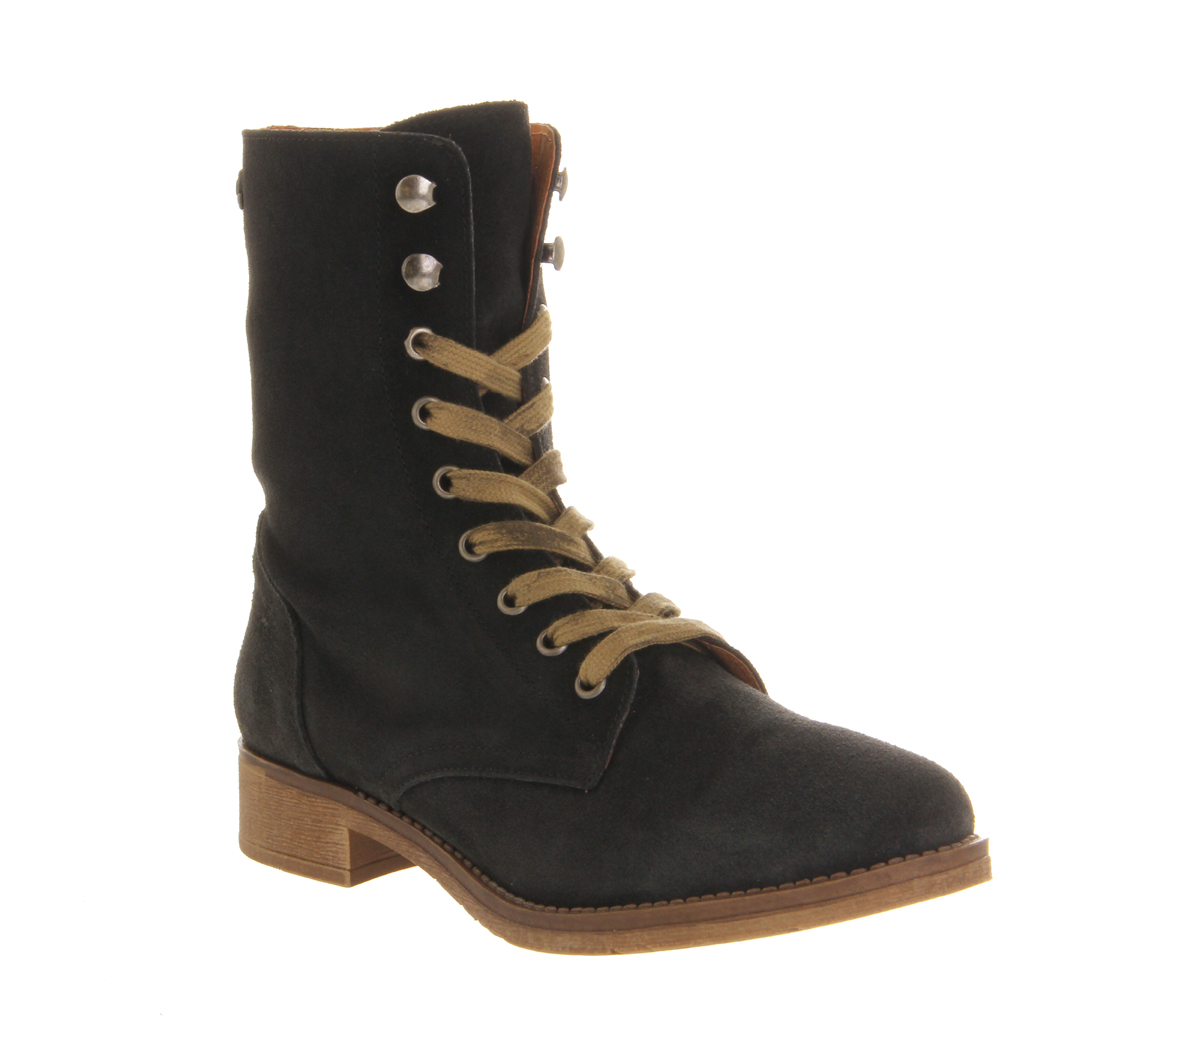 New Their Fur Trim And Speed Lace Closure System Makethese Womens Snow Boots Both  Either Snugged Up Or Folded Down Depending On Your Mood And The Weather The Genuine Suede Uppers And Synthetic